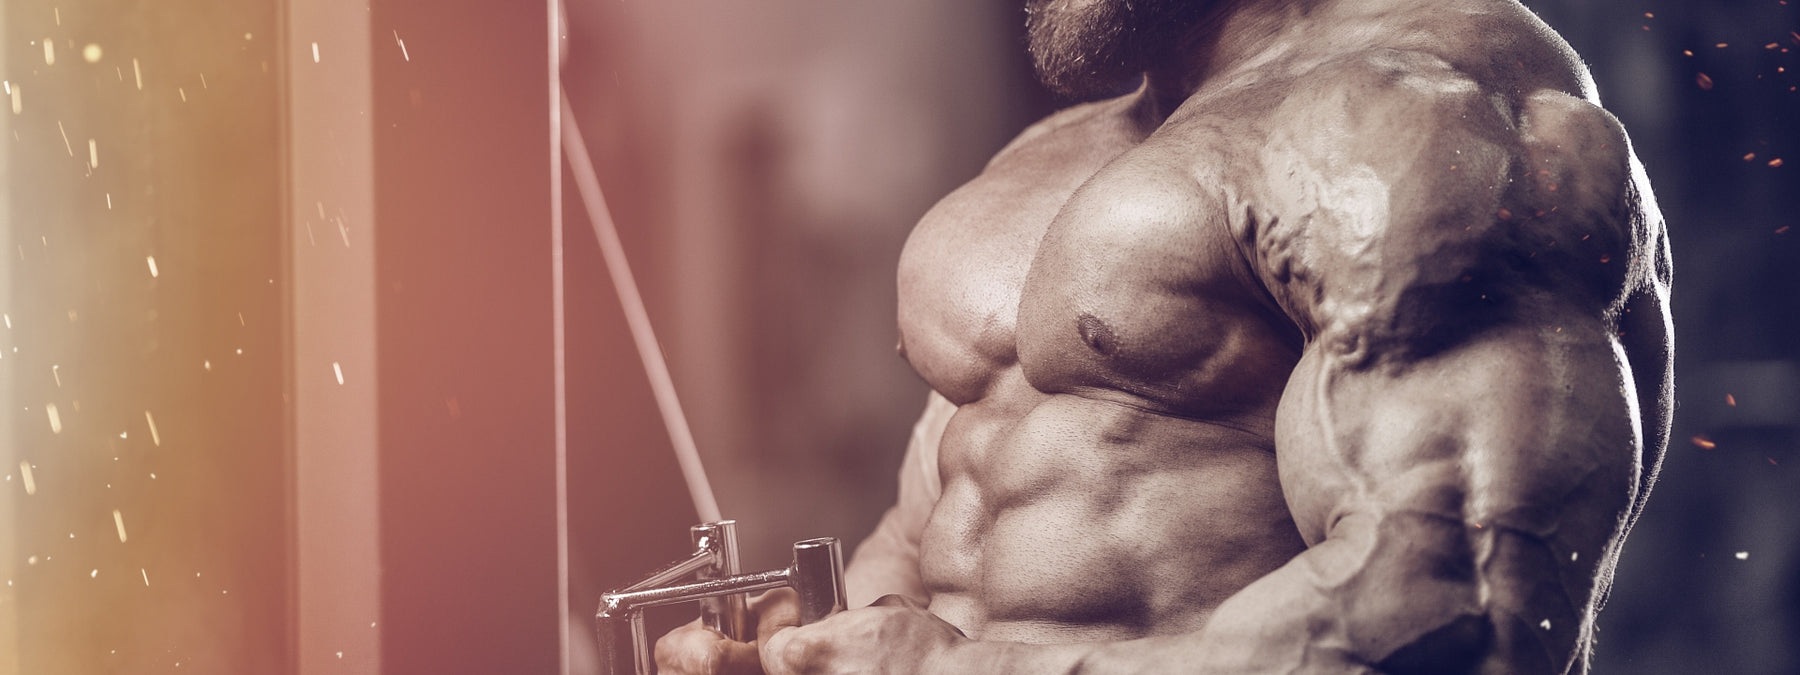 Build More Mass and Strength With Negatives